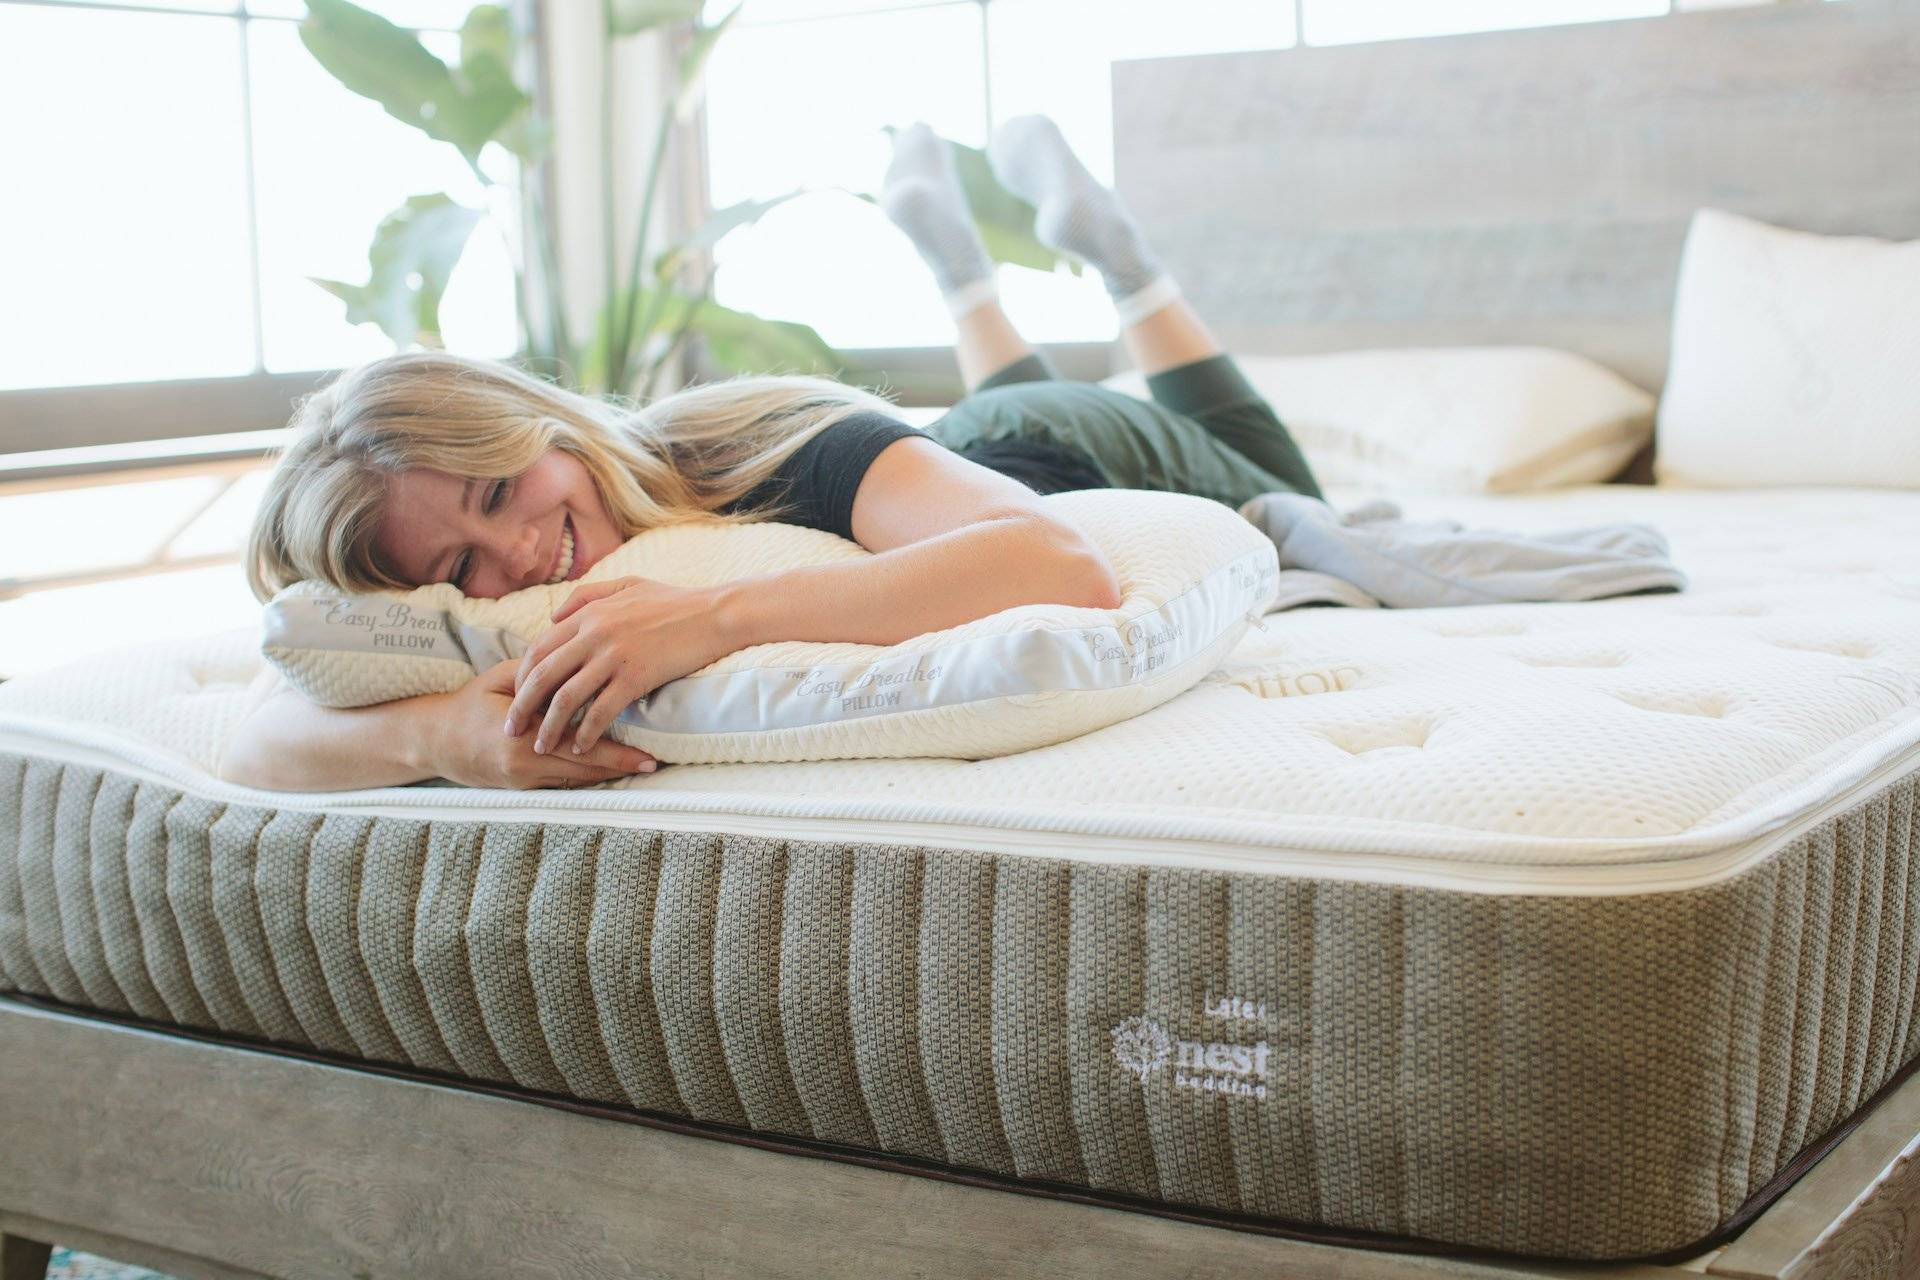 Nest Bedding – The Easy Breather Natural Pillow – Adjustable